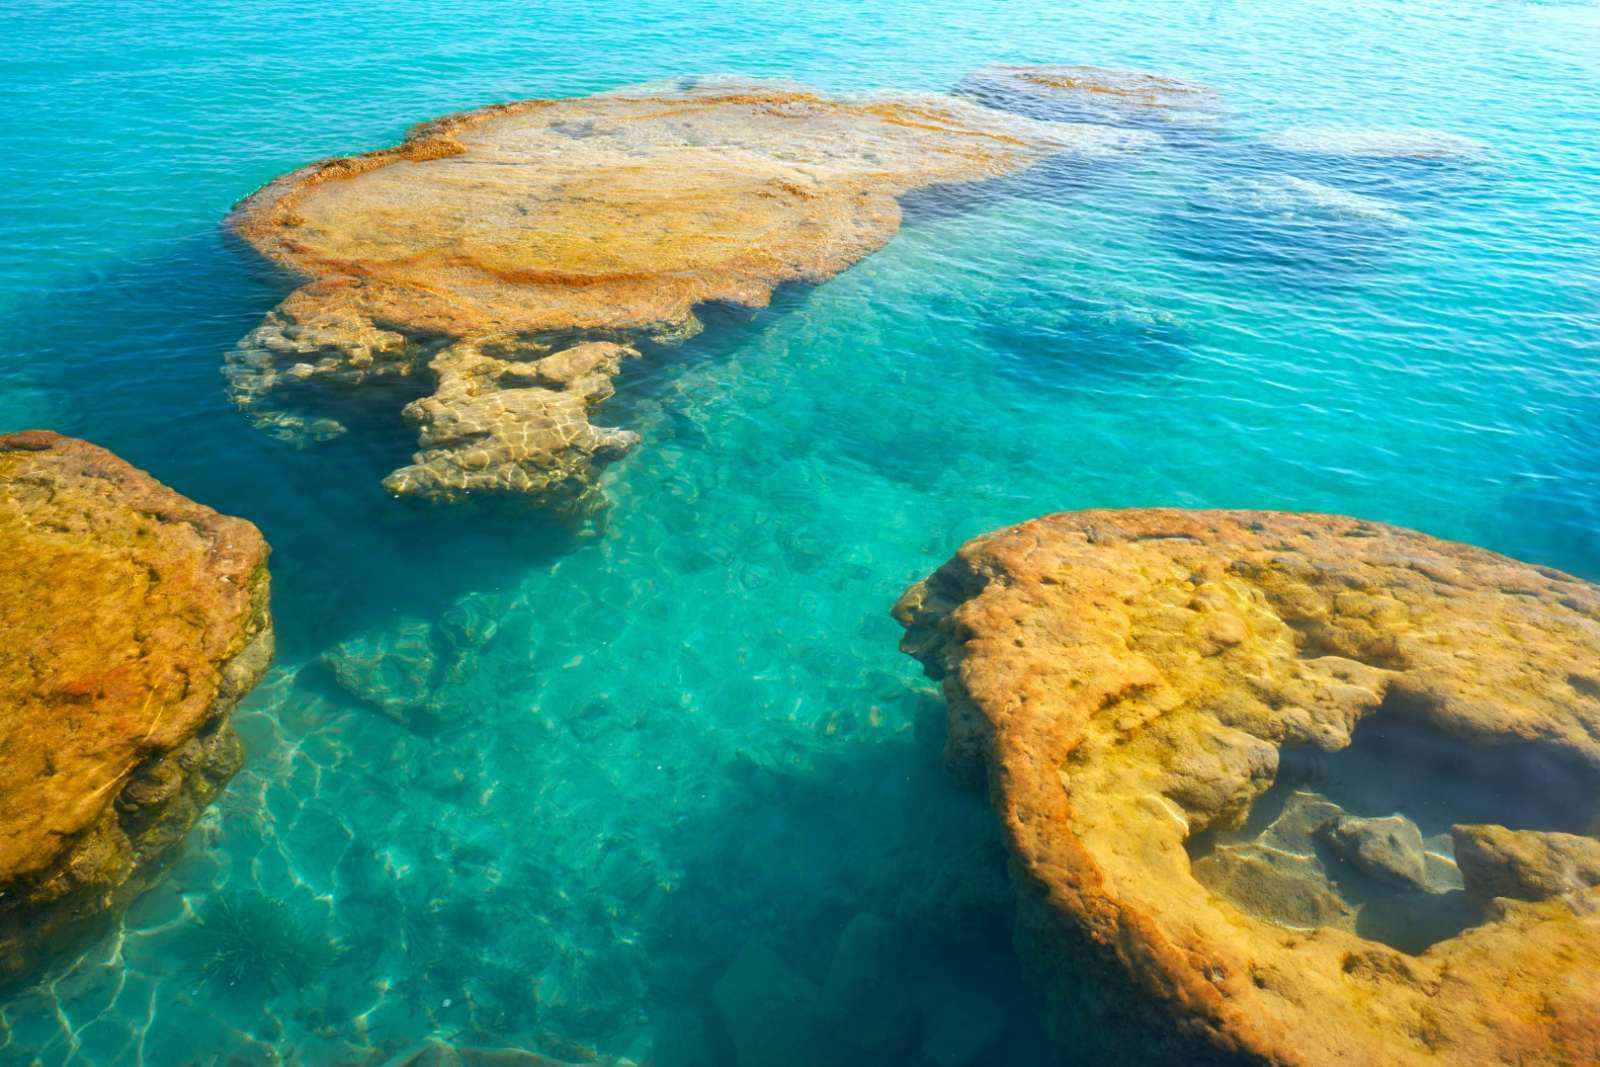 Submerged rocks at Laguna Bacalar